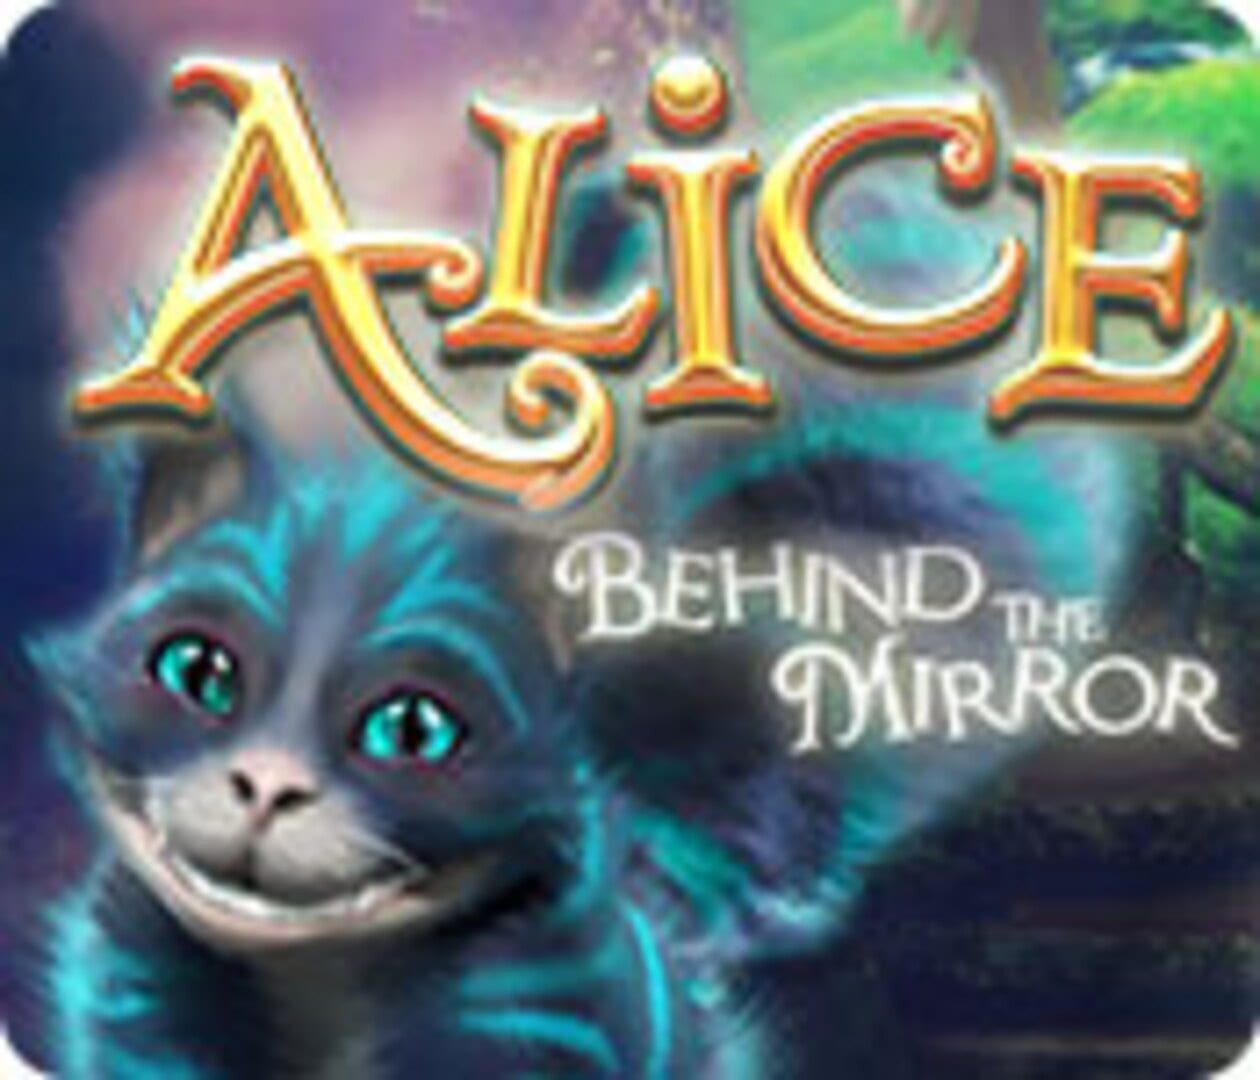 buy Alice: Behind the Mirror cd key for all platform